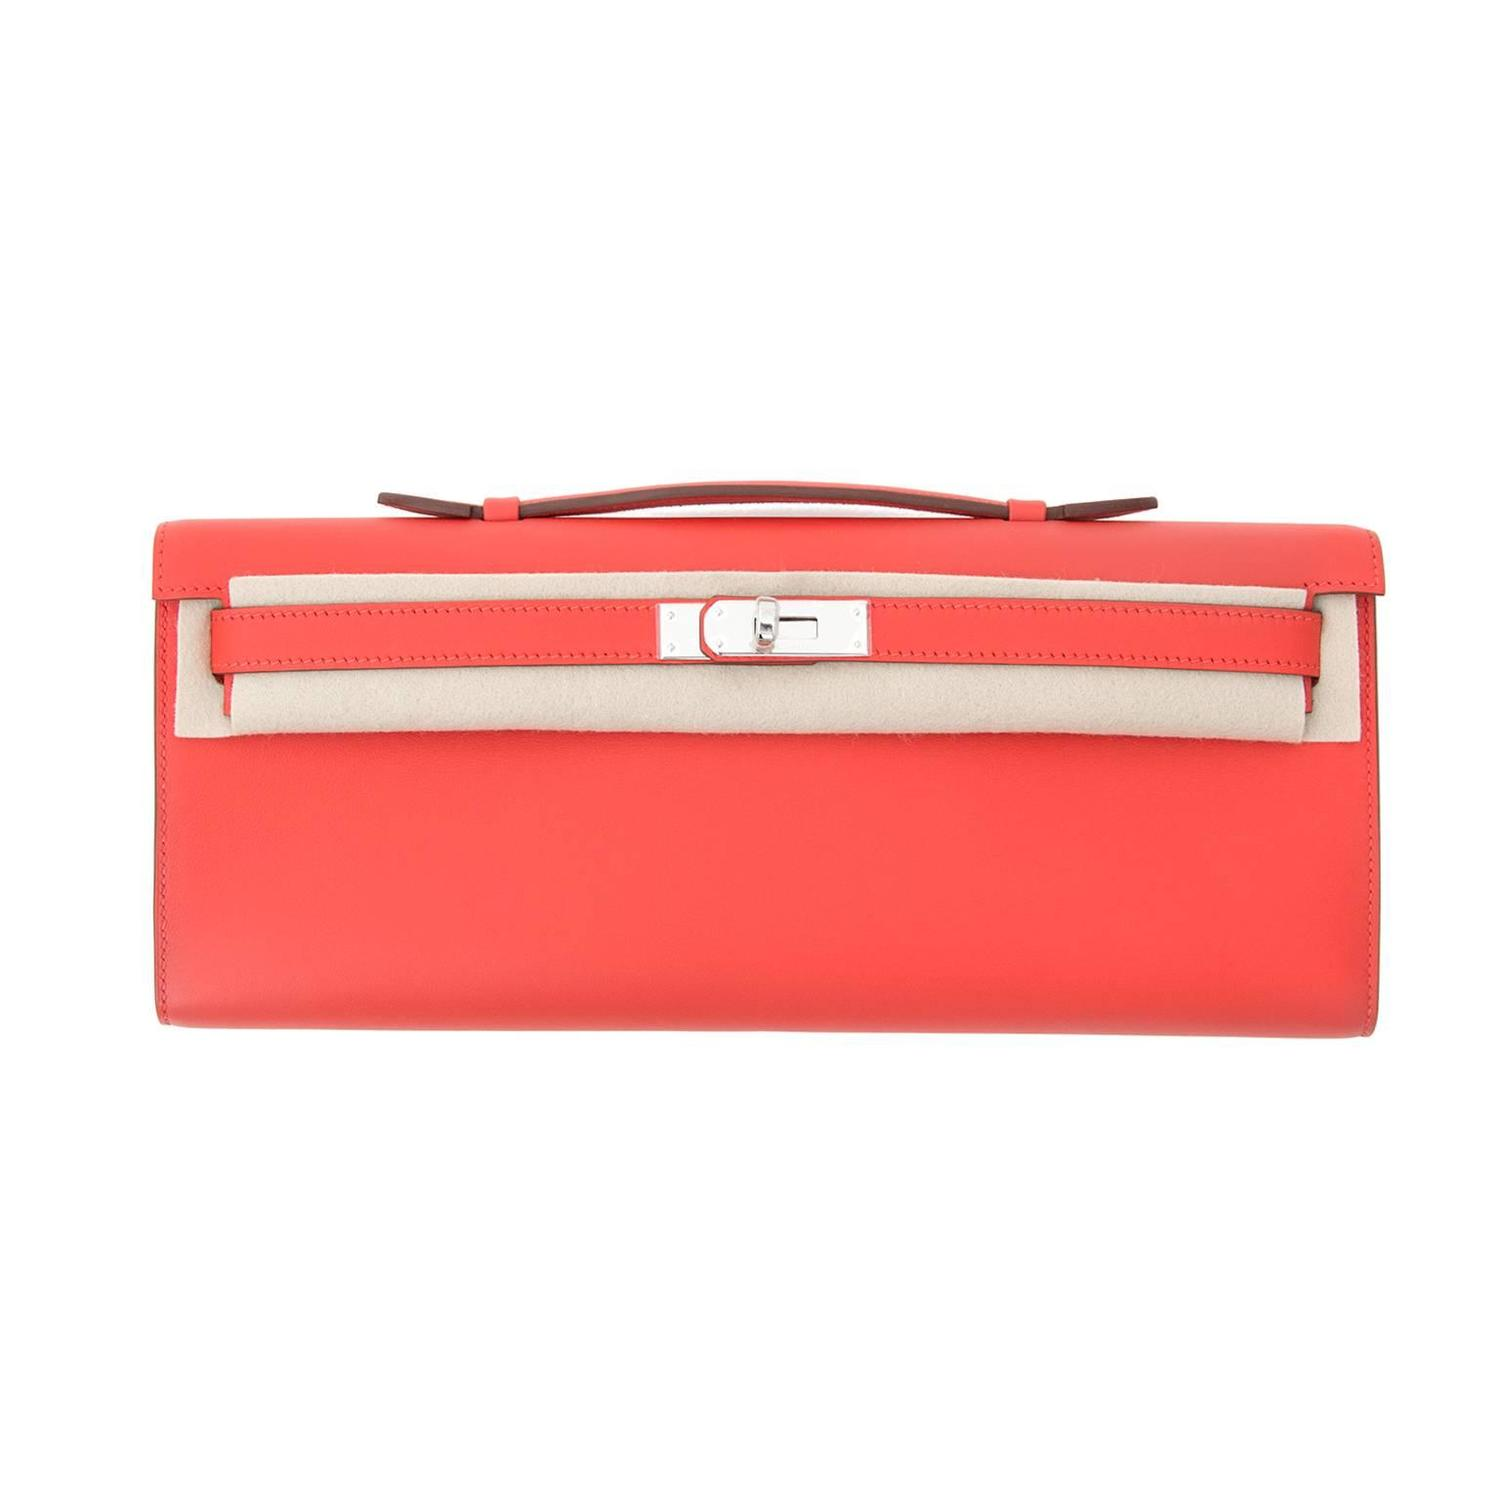 hermes kelly cut clutch in cappucine swift with silver hardware